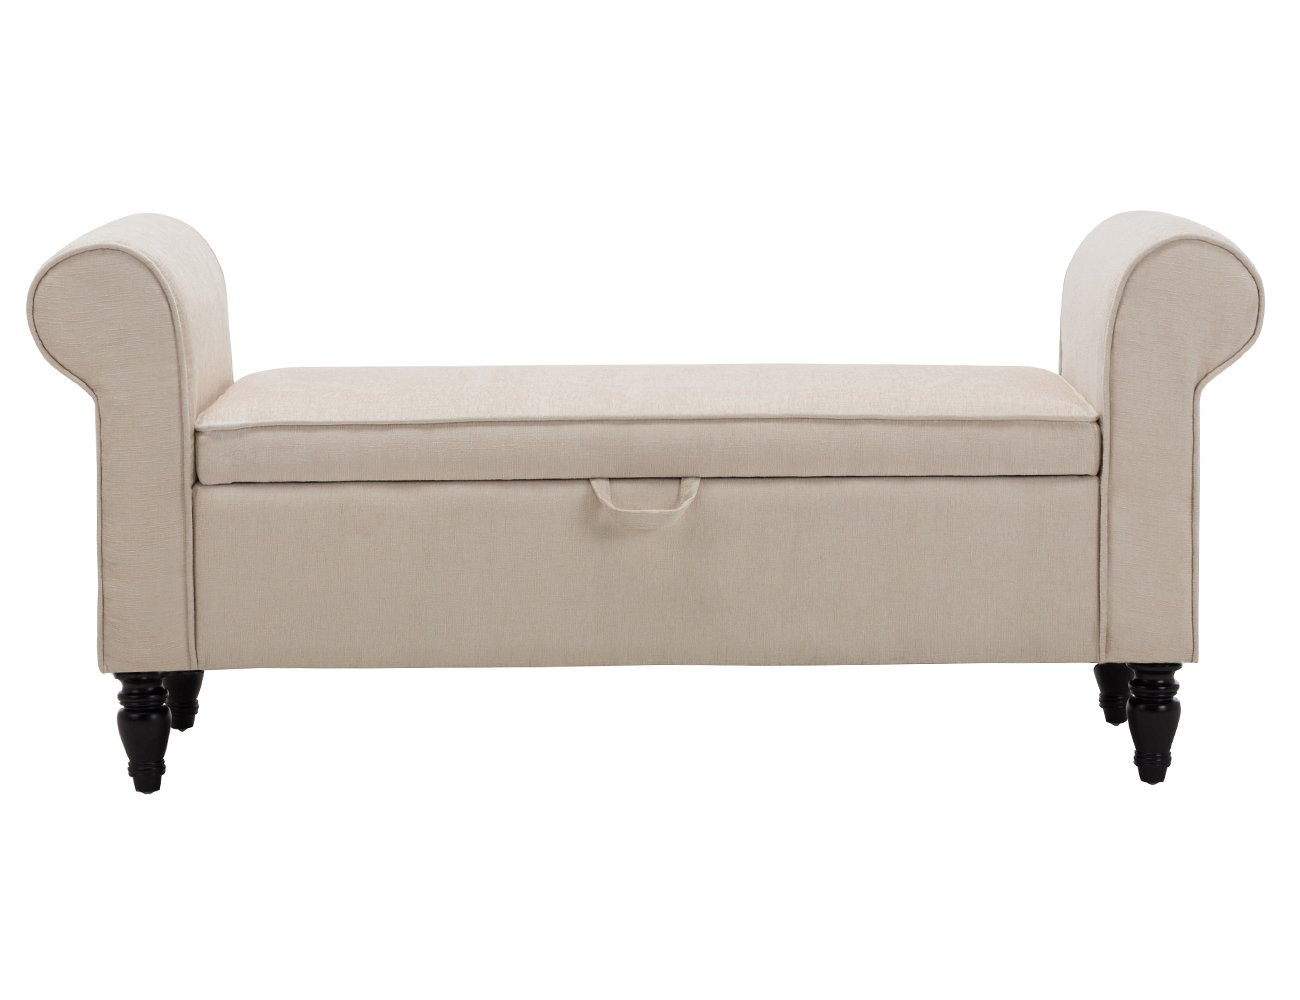 Modern Fabric Storage Bench with Arms Button Tufted Footstool Ottoman Bench for Living Room Bedroom Light Beige